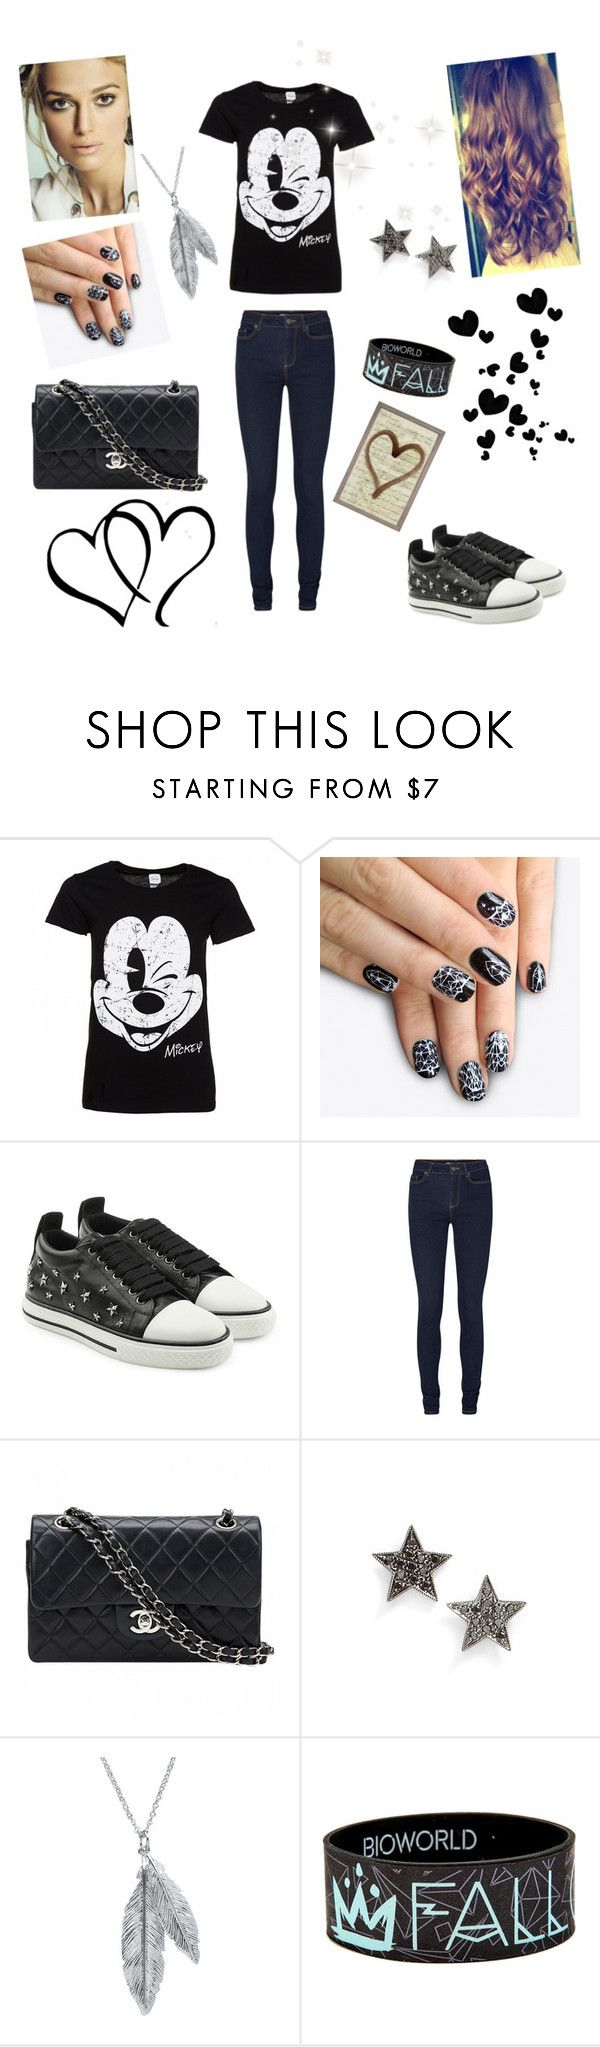 """""""For beautiful day"""" by eliskiku ❤ liked on Polyvore featuring Disney, alfa.K, RED Valentino, Chanel, Dana Rebecca Designs, Nina B and Natural Curiosities"""